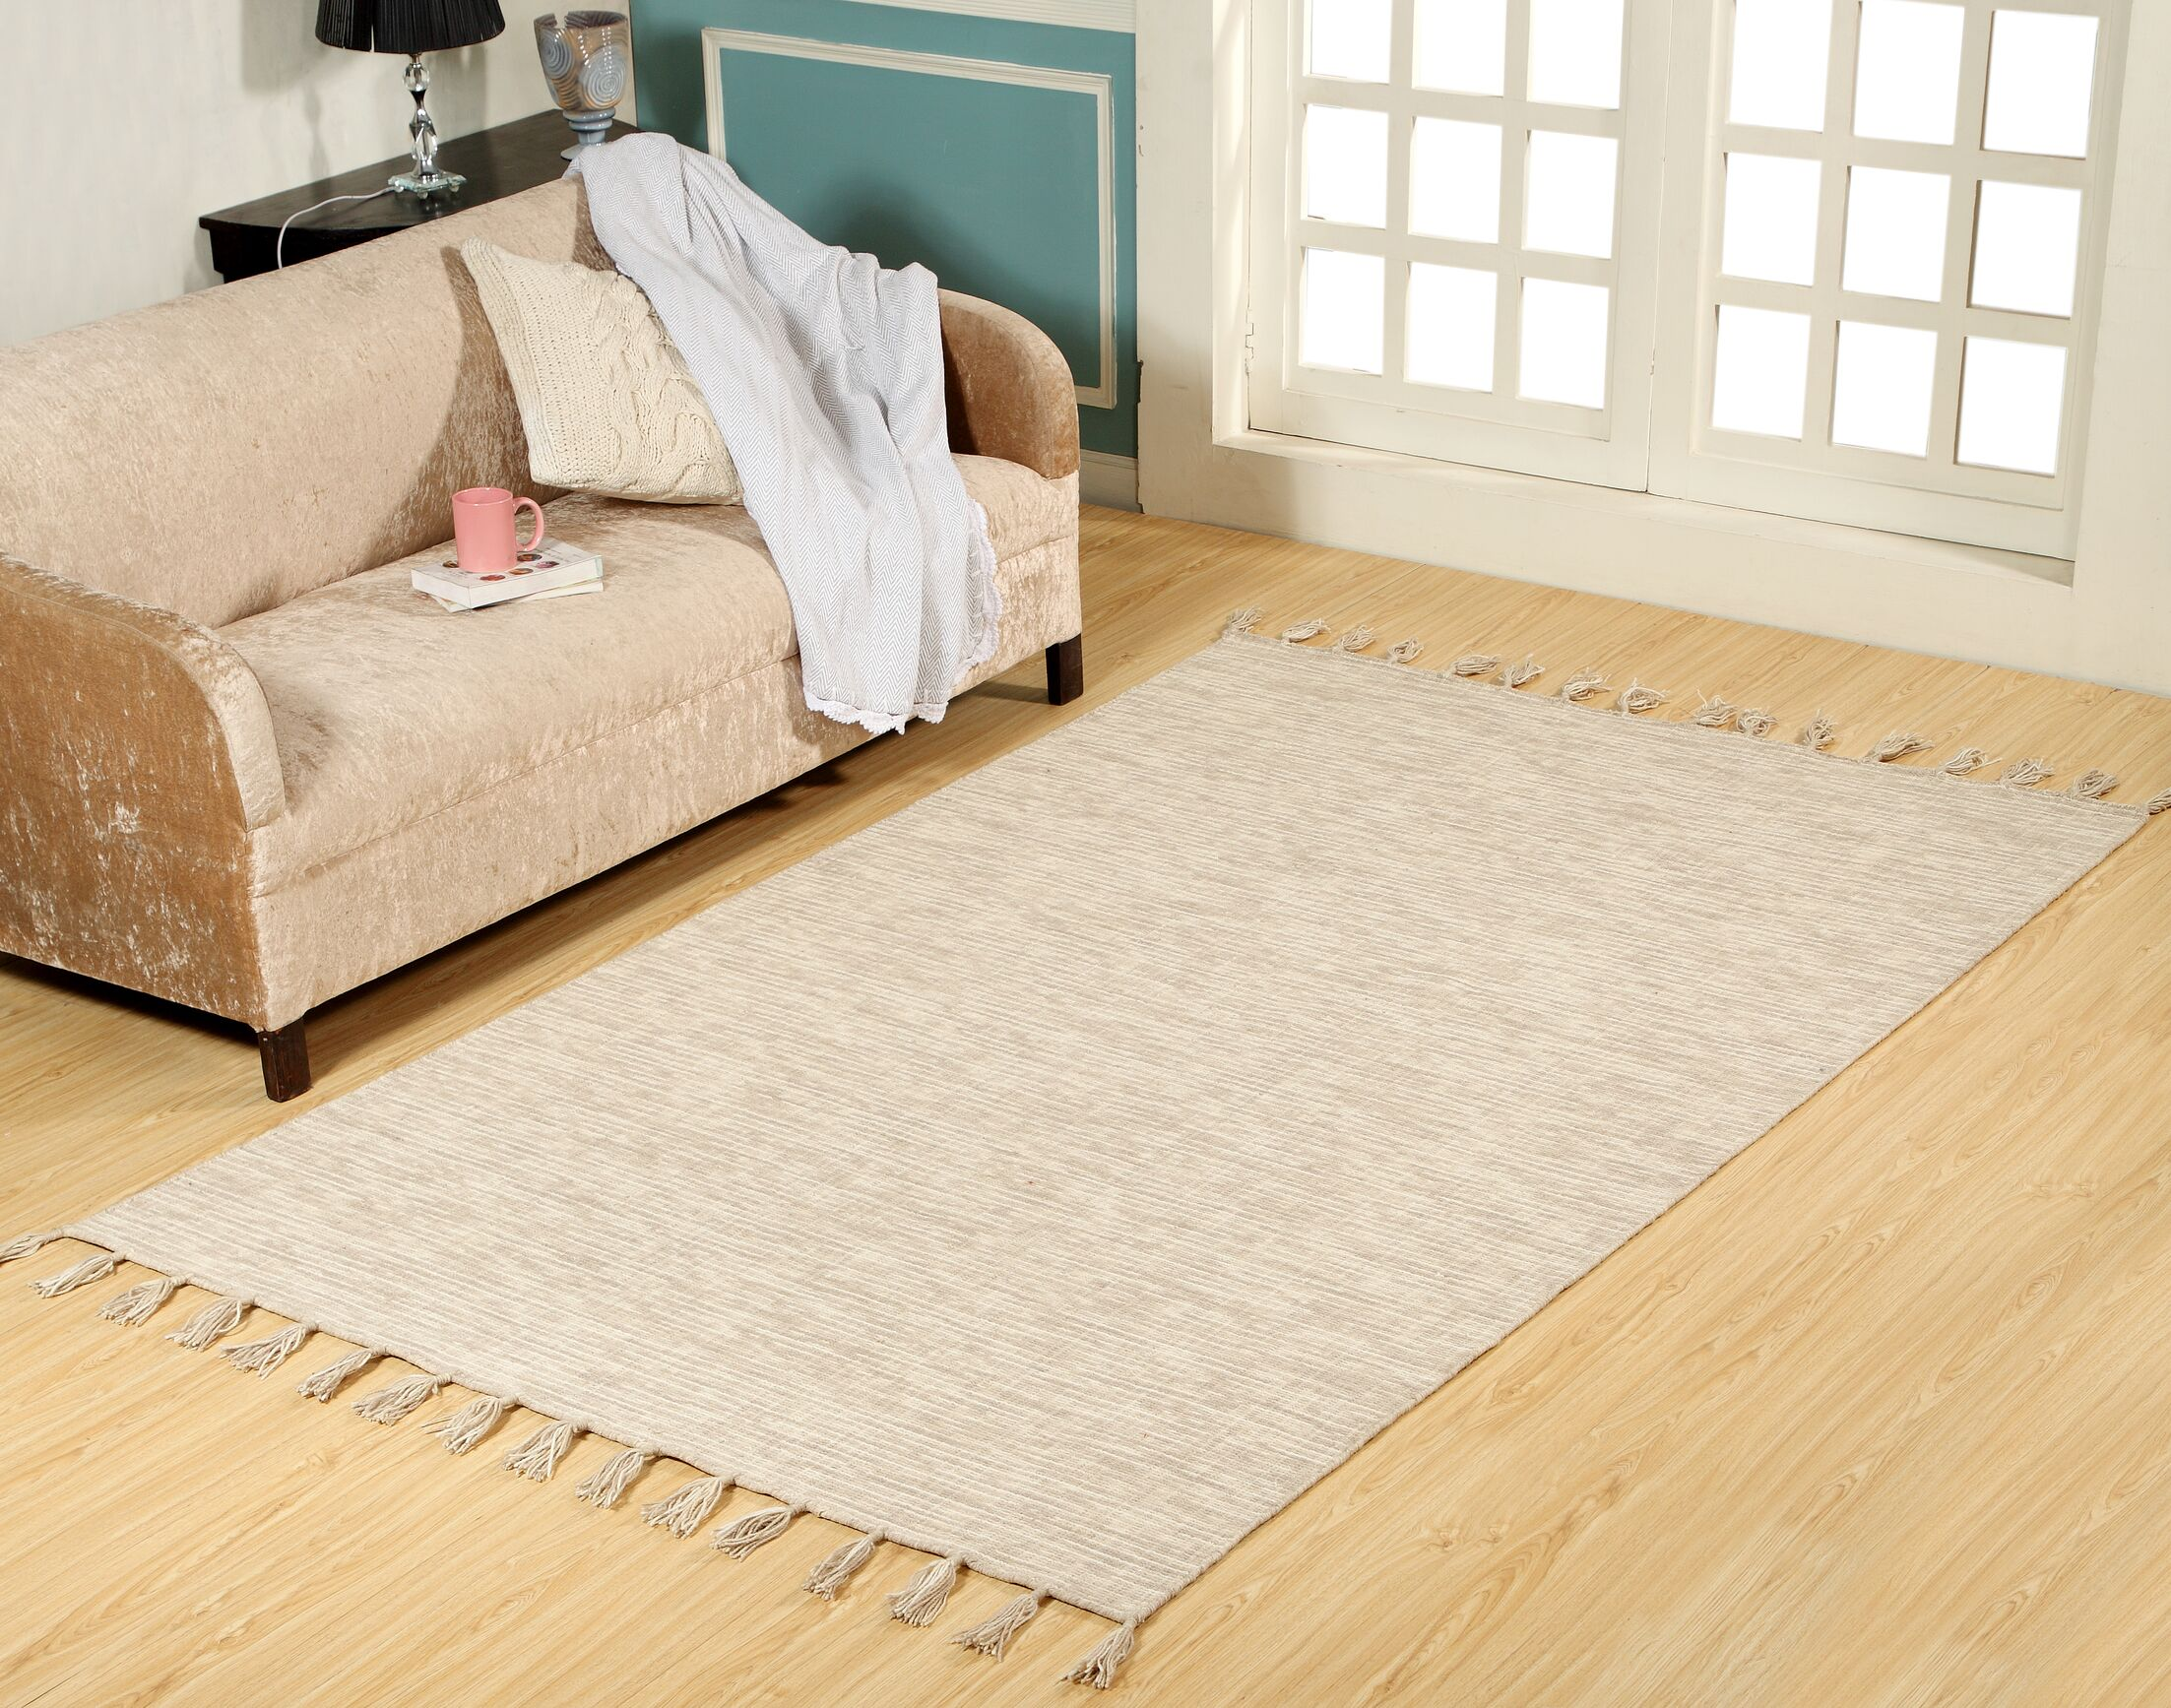 Willey Hand-Woven Wool Beige Area Rug Rug Size: Rectangle 8' x 11'